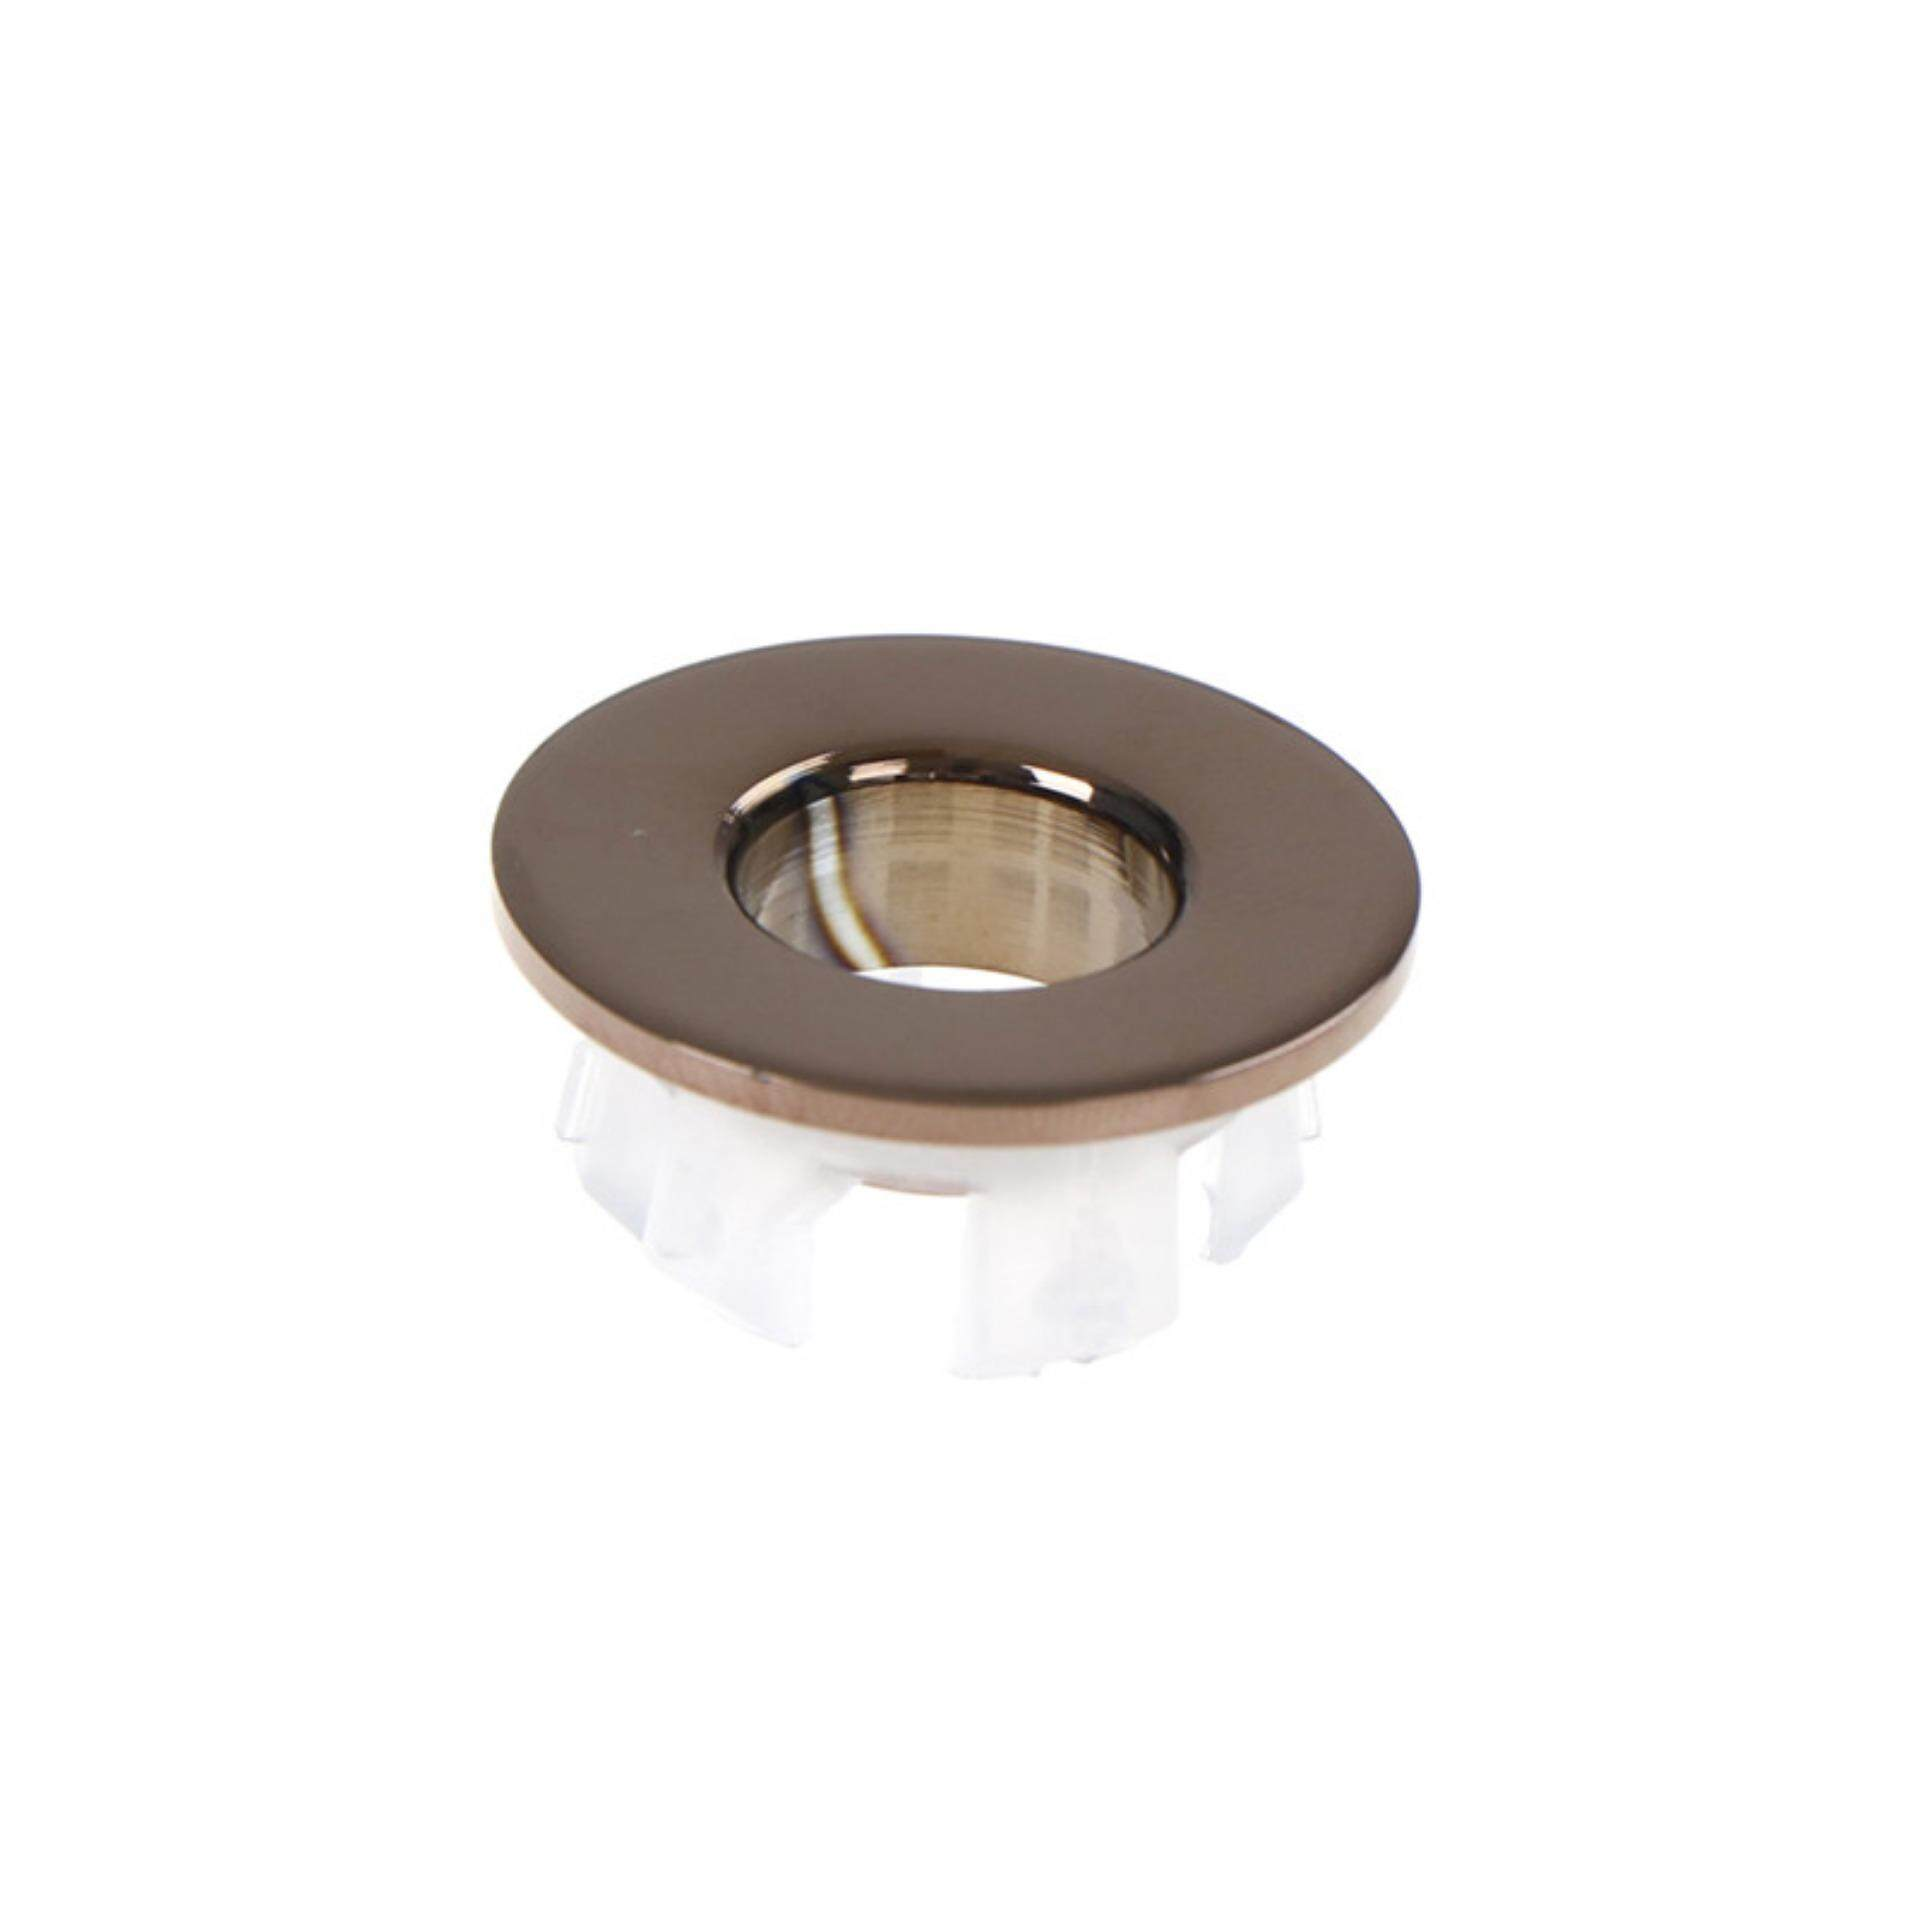 Bathroom Basin / Sink Overflow Cover/Brass Six-foot ring Bathroom Product A2 ...